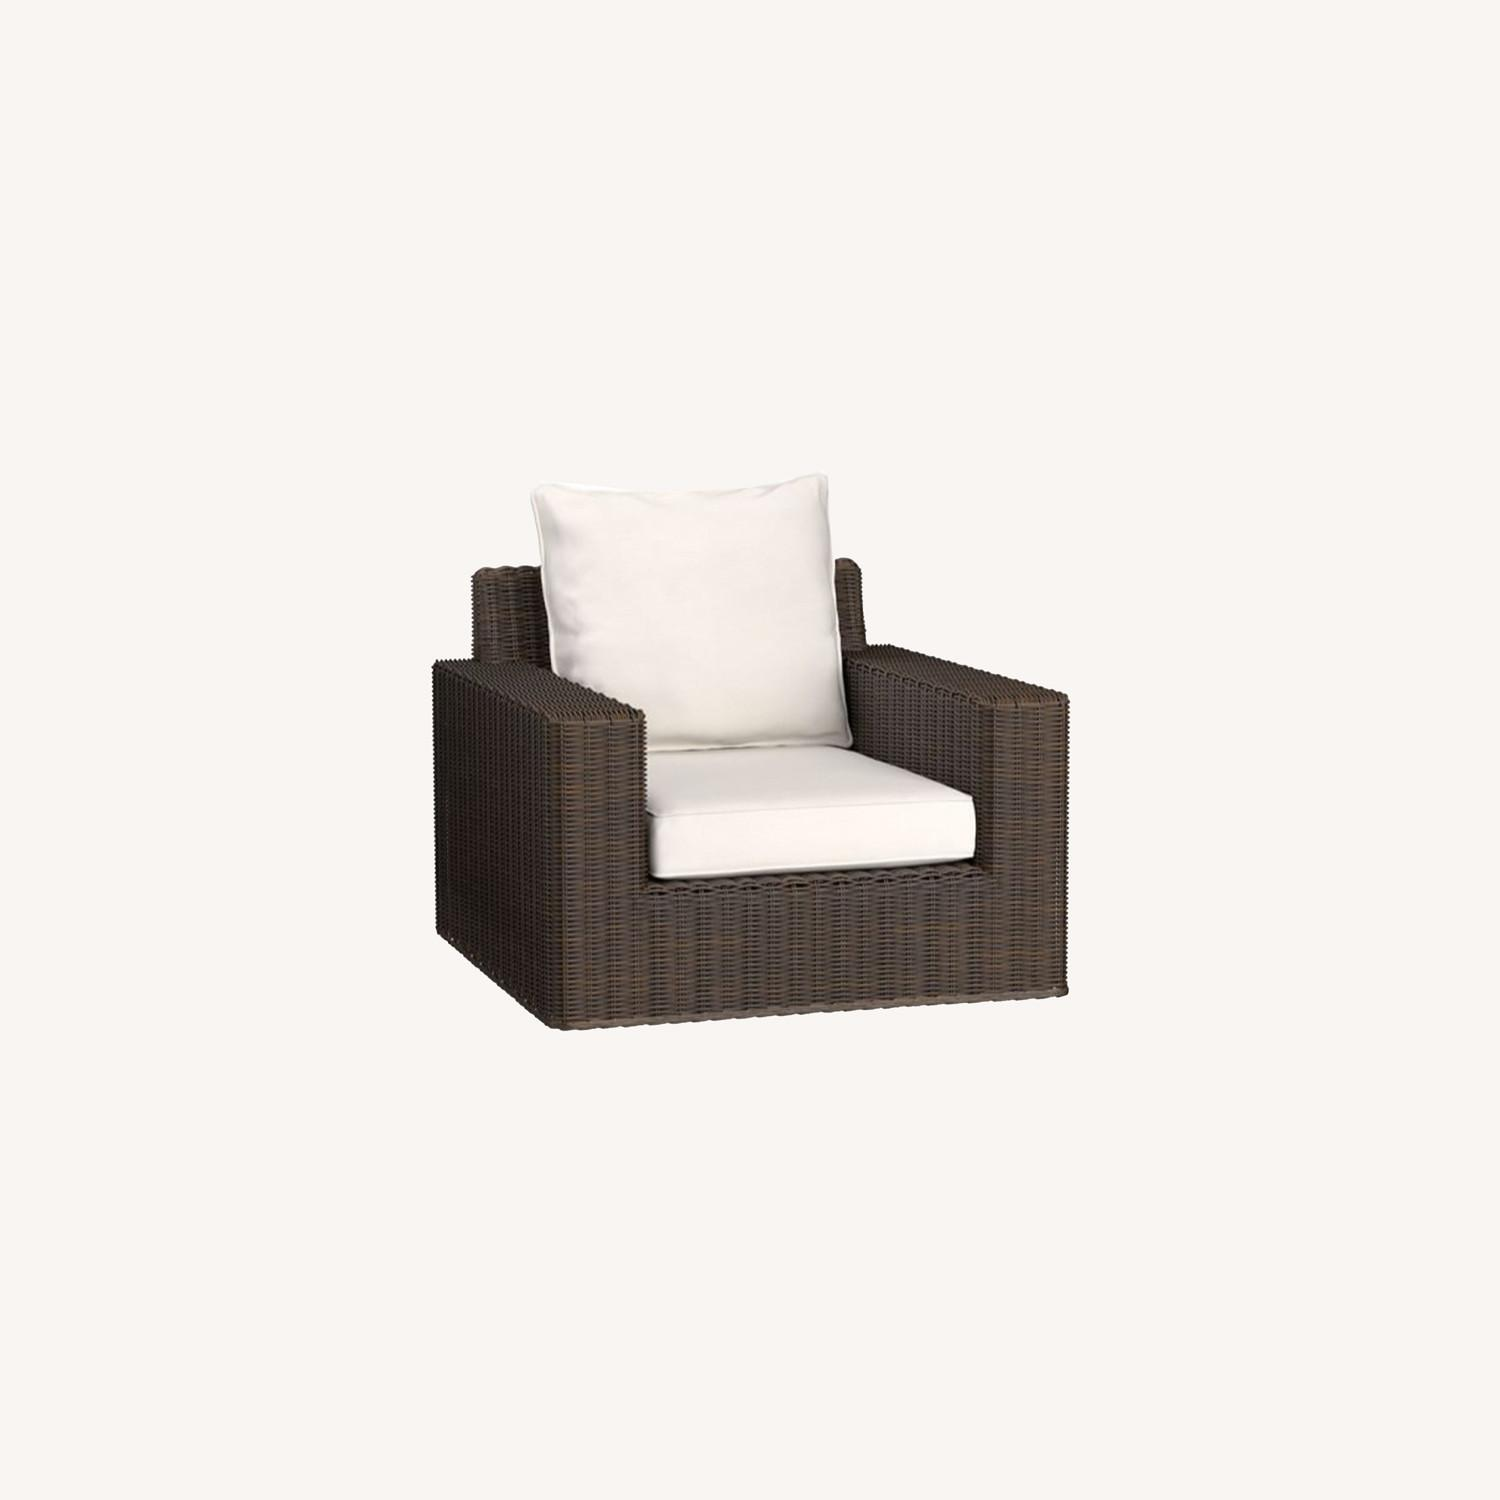 Pottery Barn Torrey All-Weather Lounge Chair - image-0